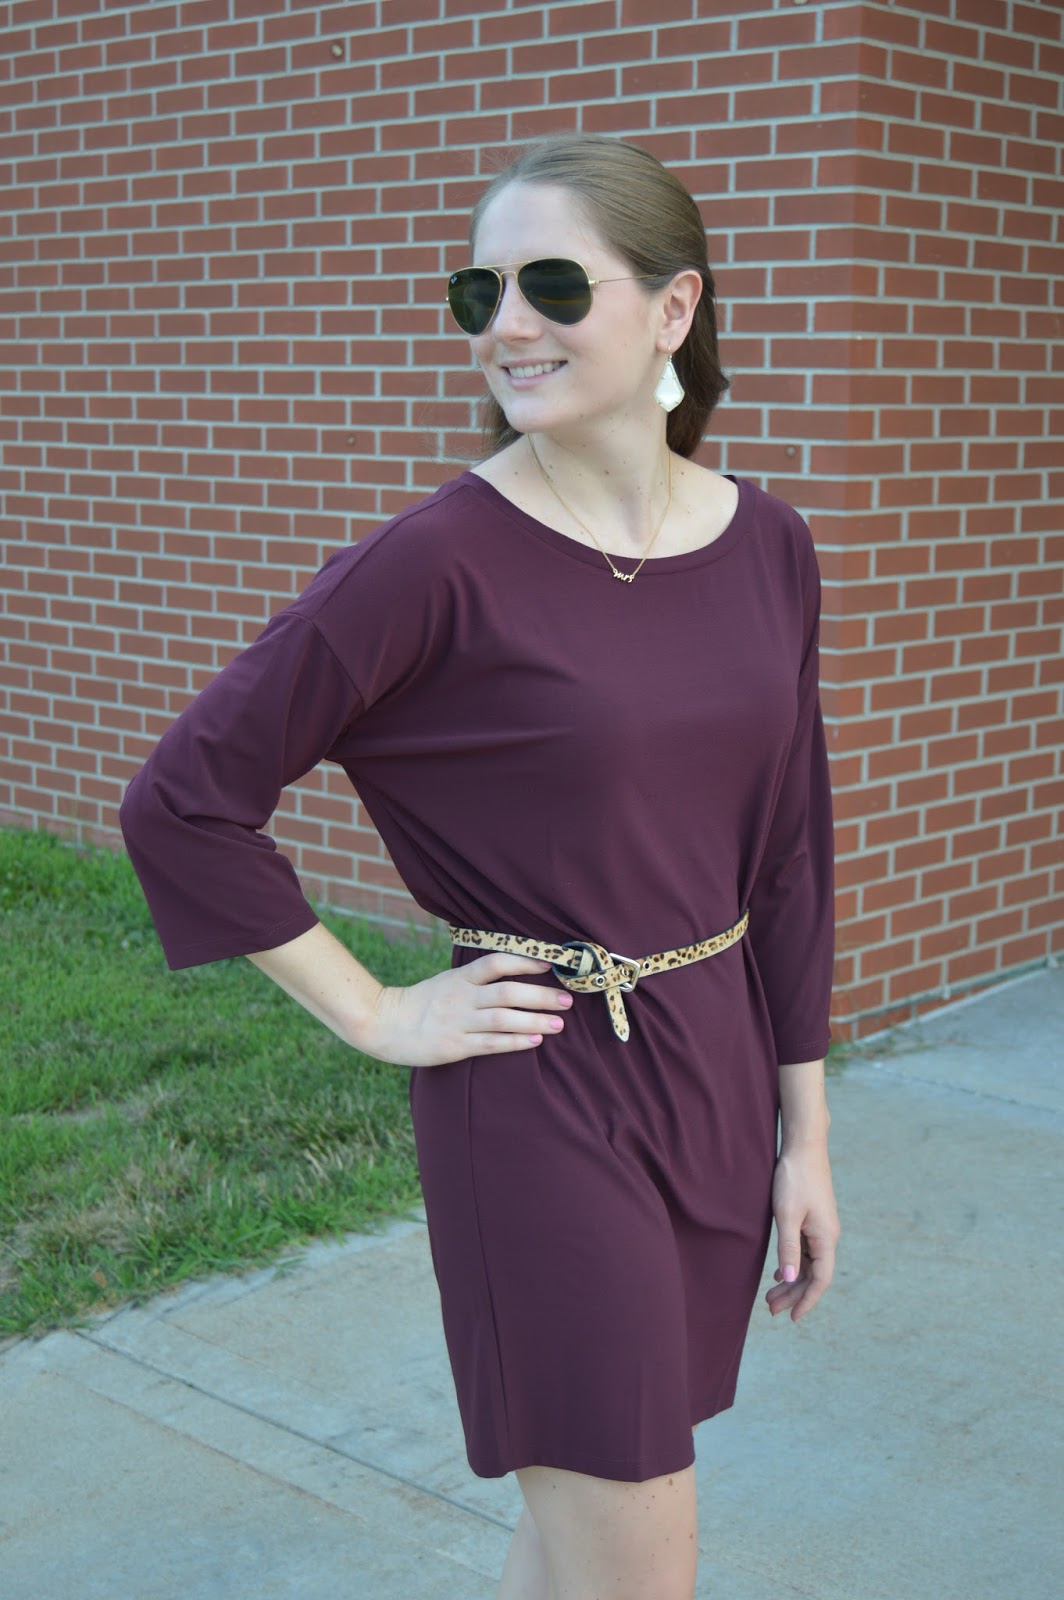 purple or maroon dresses | summer outfit ideas | what to wear this summer | cute outfit ideas for date nigth | leith dolman dress from the #nsale |